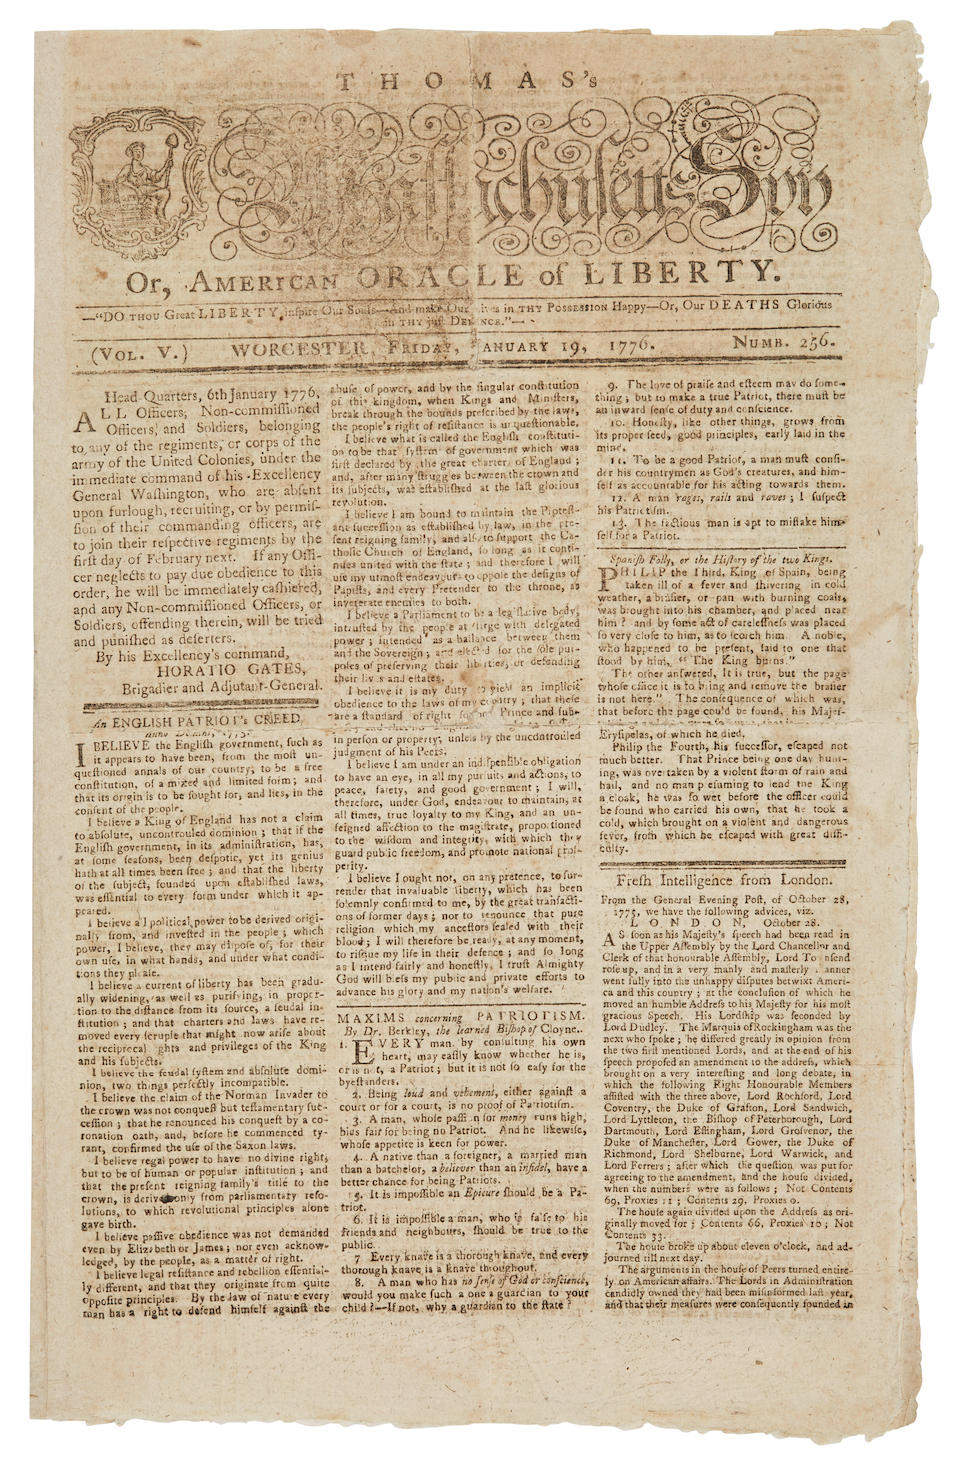 MASSACHUSETTS SPY. Revere, Paul, Masthead. The Massachusetts Spy, or American Oracle of Liberty, Vol 5, Number 256. Worcester: Friday January 19, 1776.